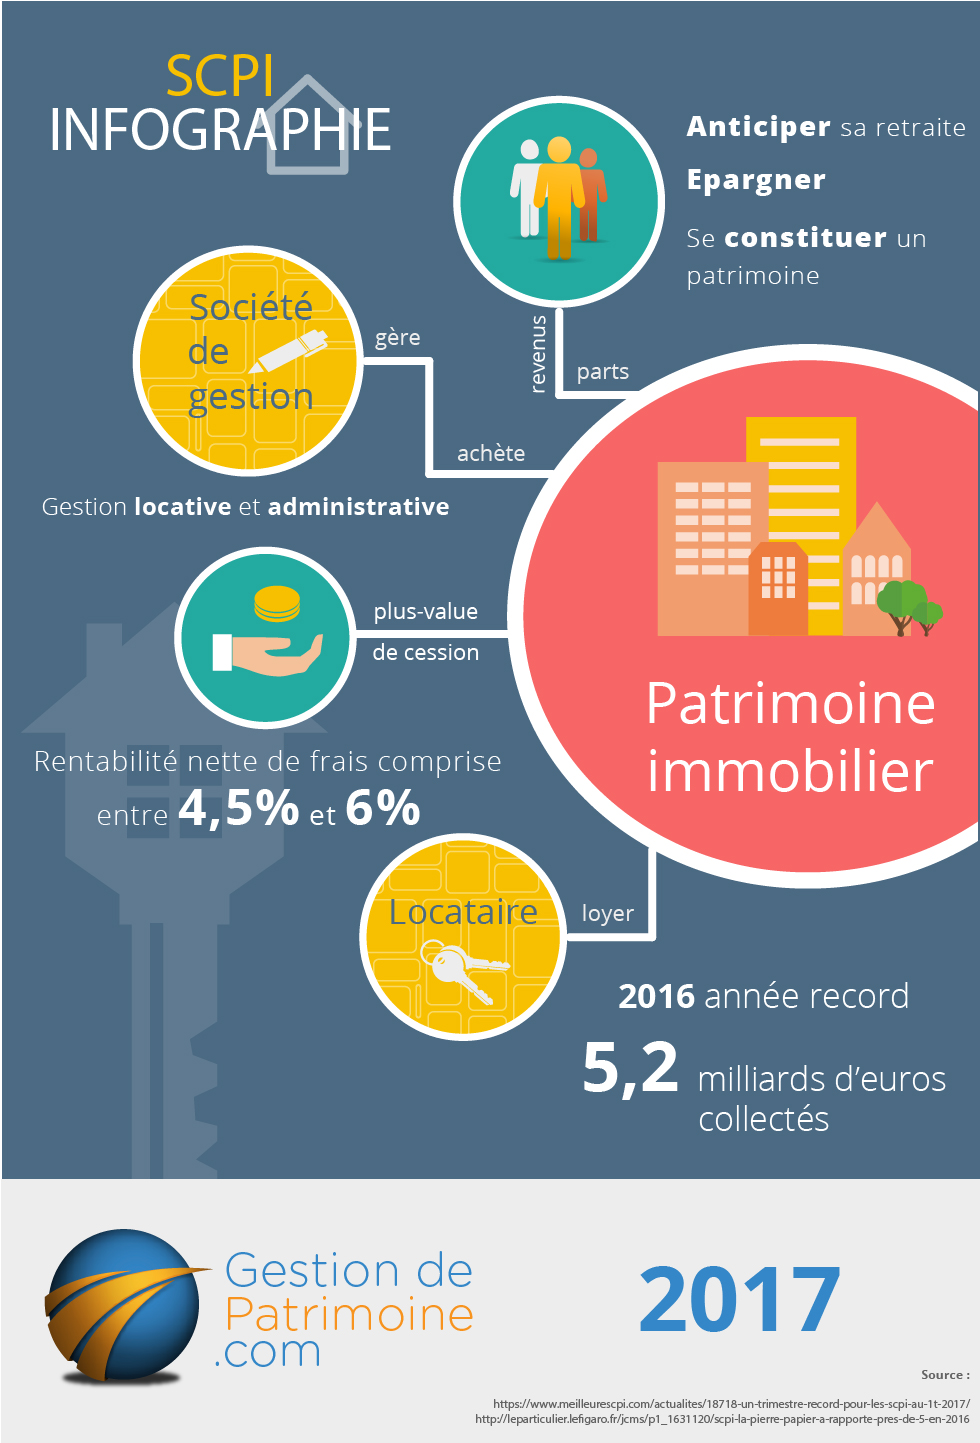 infographie SCPI 2017